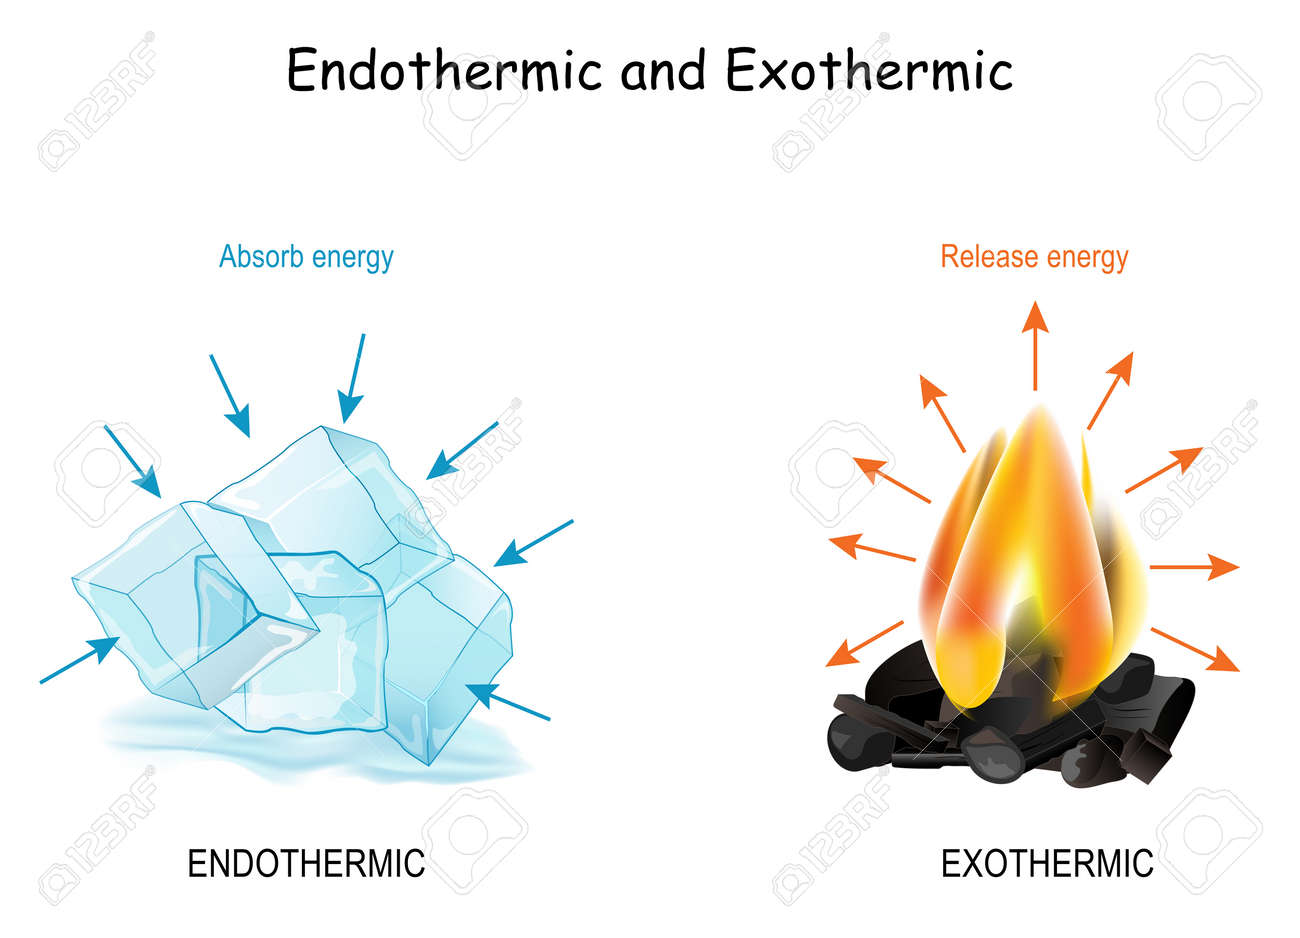 Endothermic and Exothermic chemical reactions. Cold cubes of ice Absorb energy, and hot fire releases energy. Poster for Distance Learning of chemistry and physics - 171348879